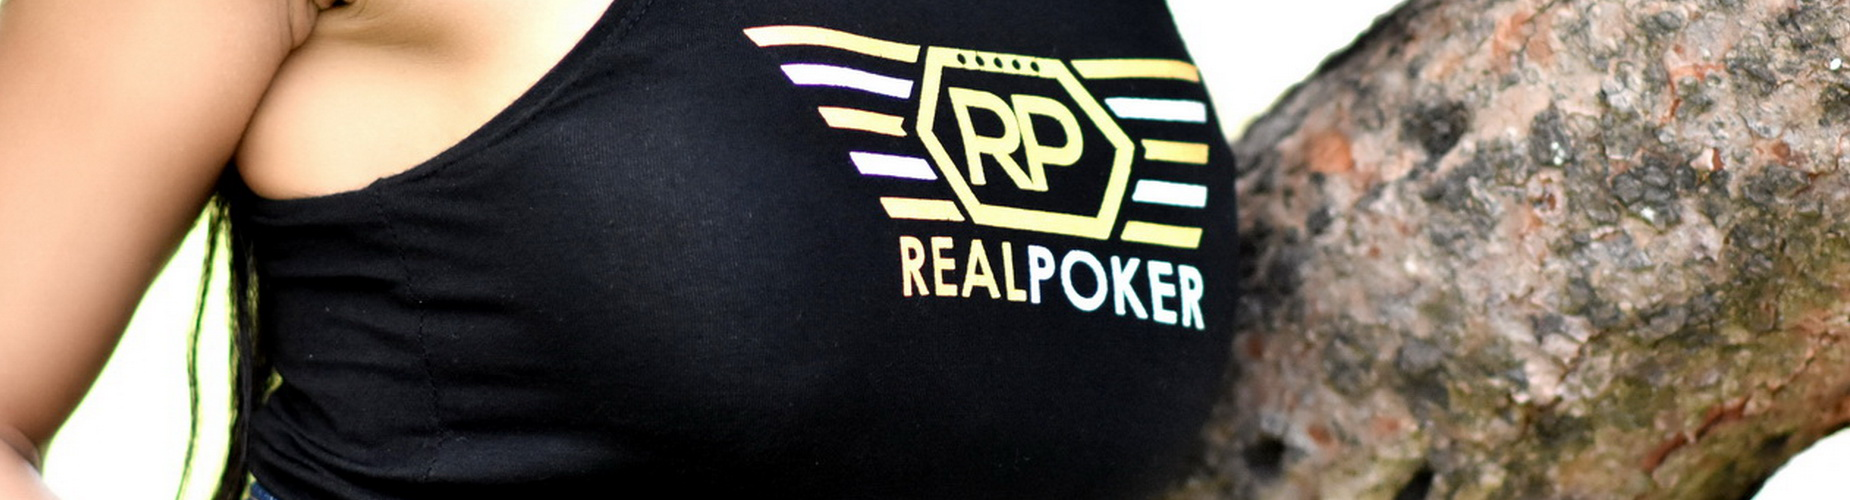 Enjoy the Real Poker store